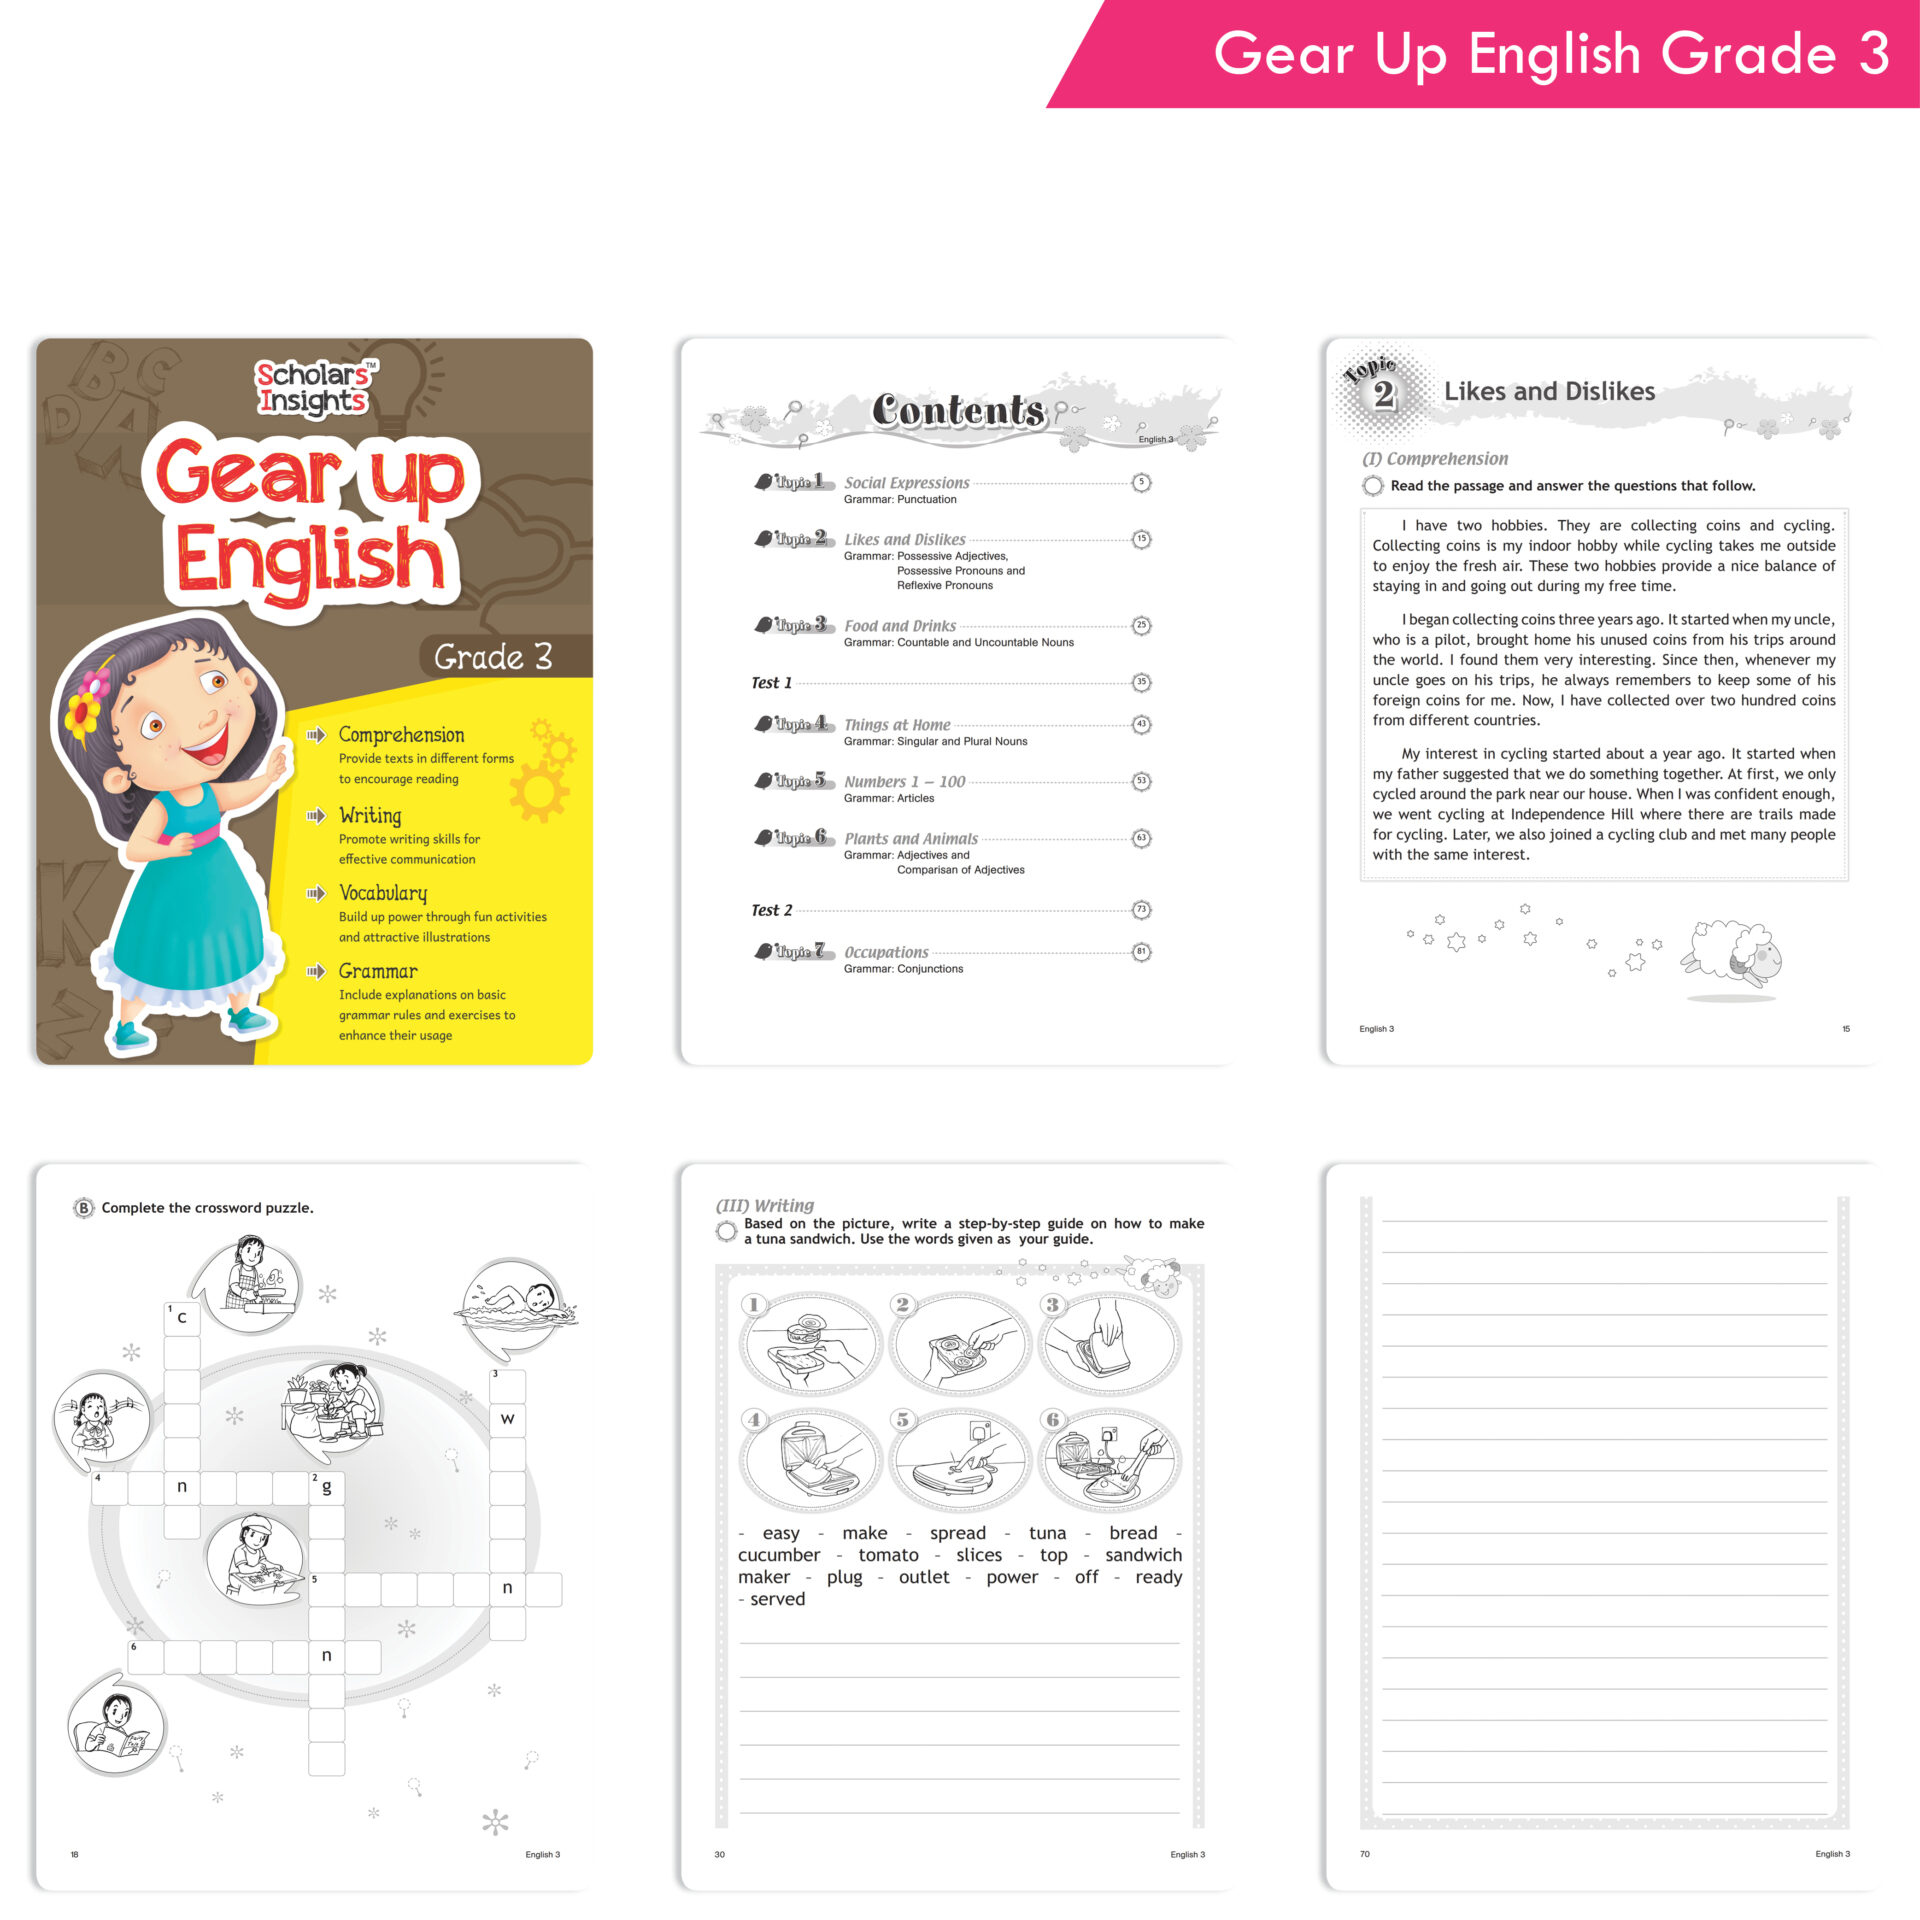 Scholars Insights Gear Up English and Maths Grade 3 Set of 2 2